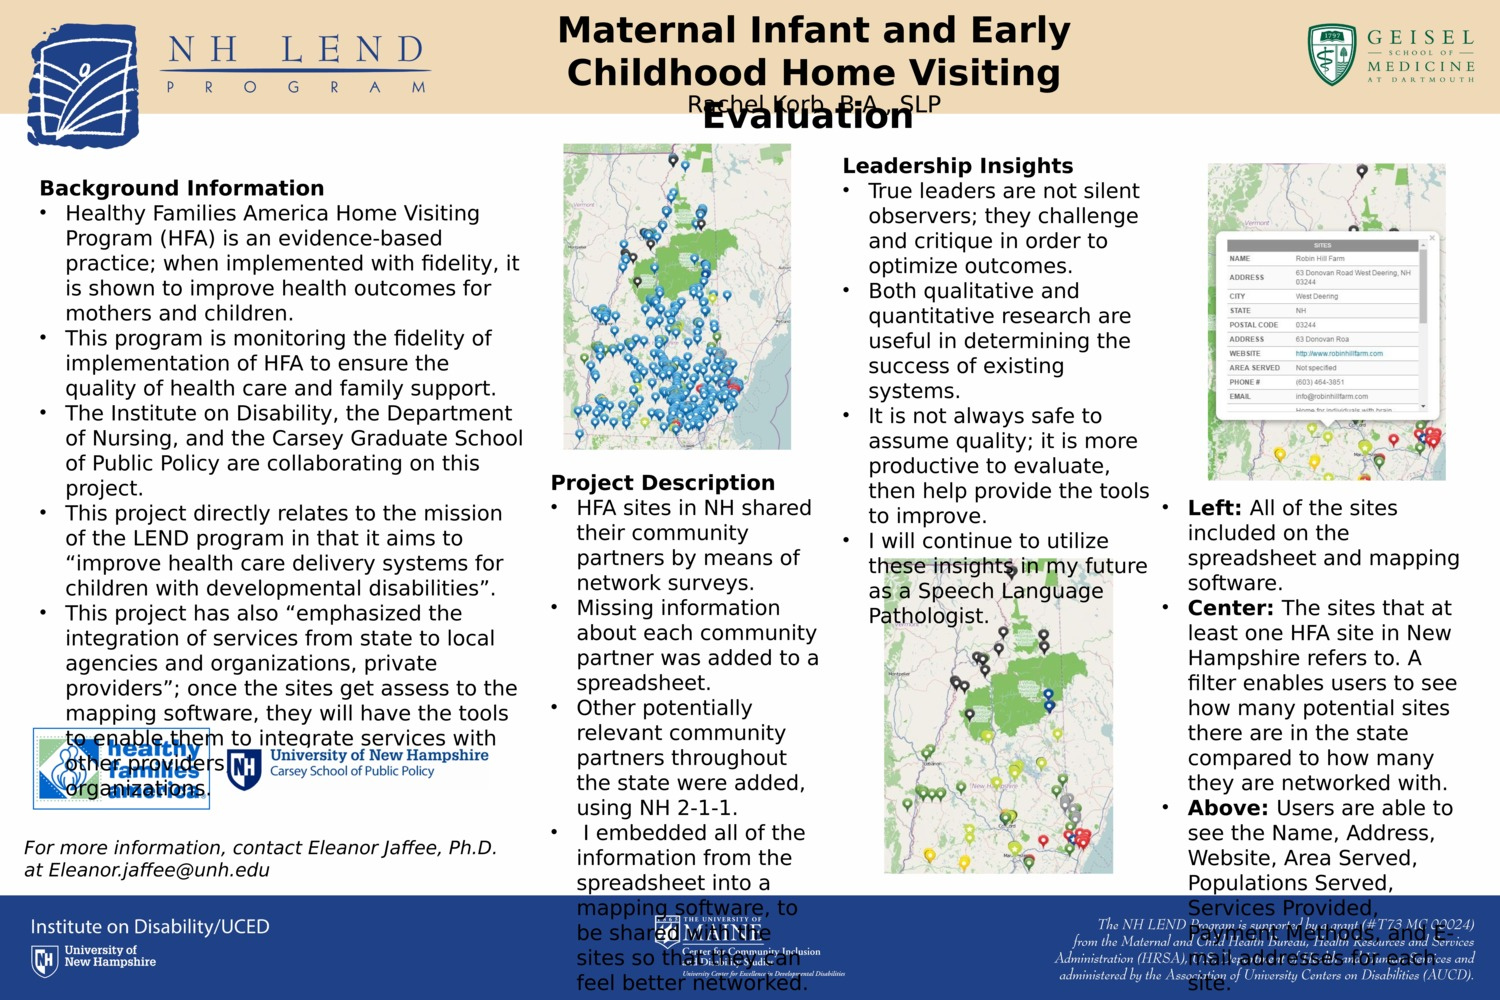 Maternal Infant And Early Childhood Home Visiting Evaluation by rlk2002